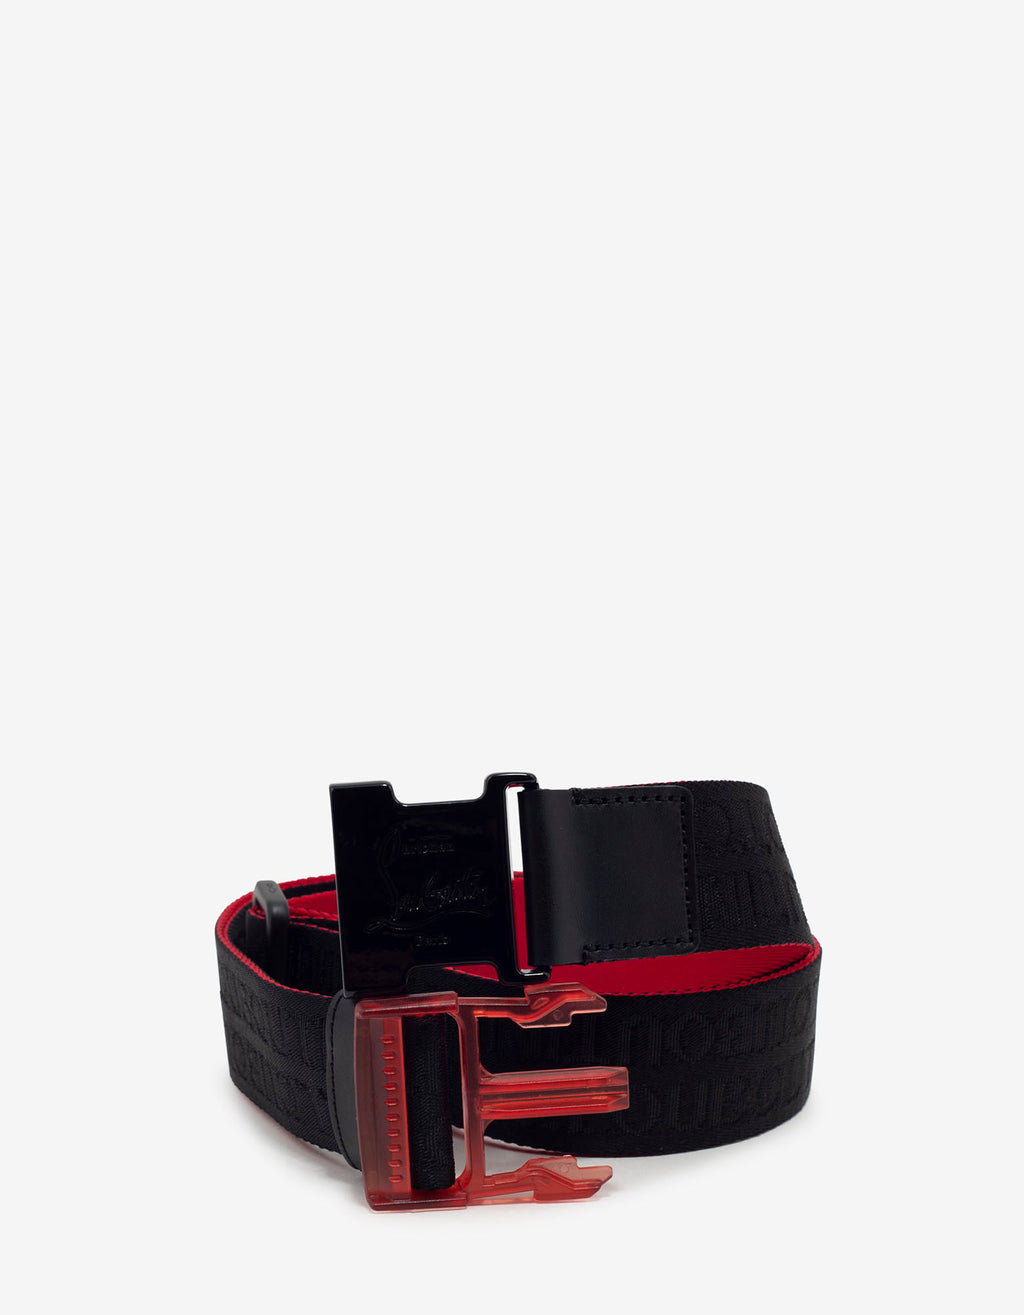 Loubiclic Black Nylon Logo Jacquard Belt